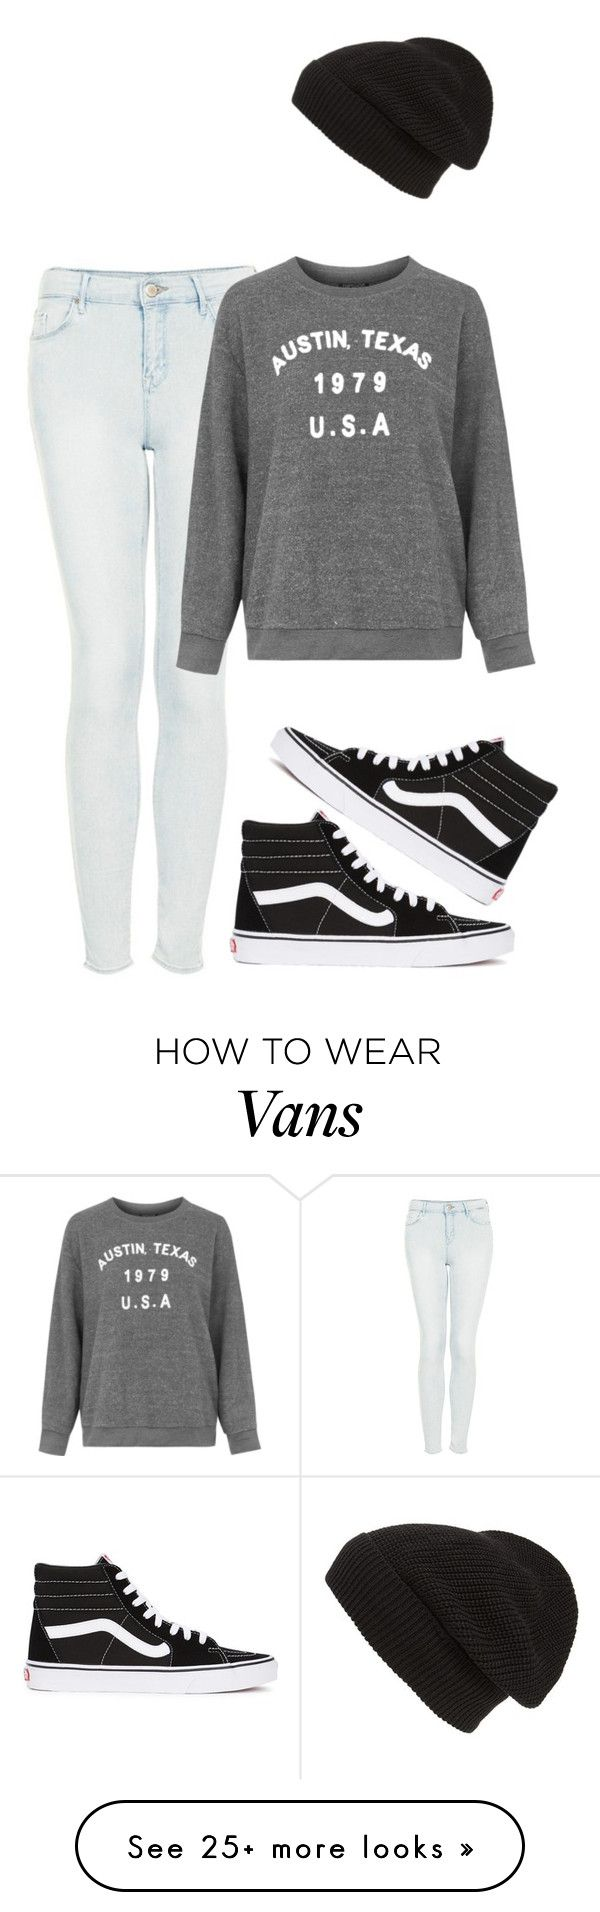 """""""Untitled #1498"""" by musicfasionbooks on Polyvore featuring Topshop, Vans and Phase 3"""